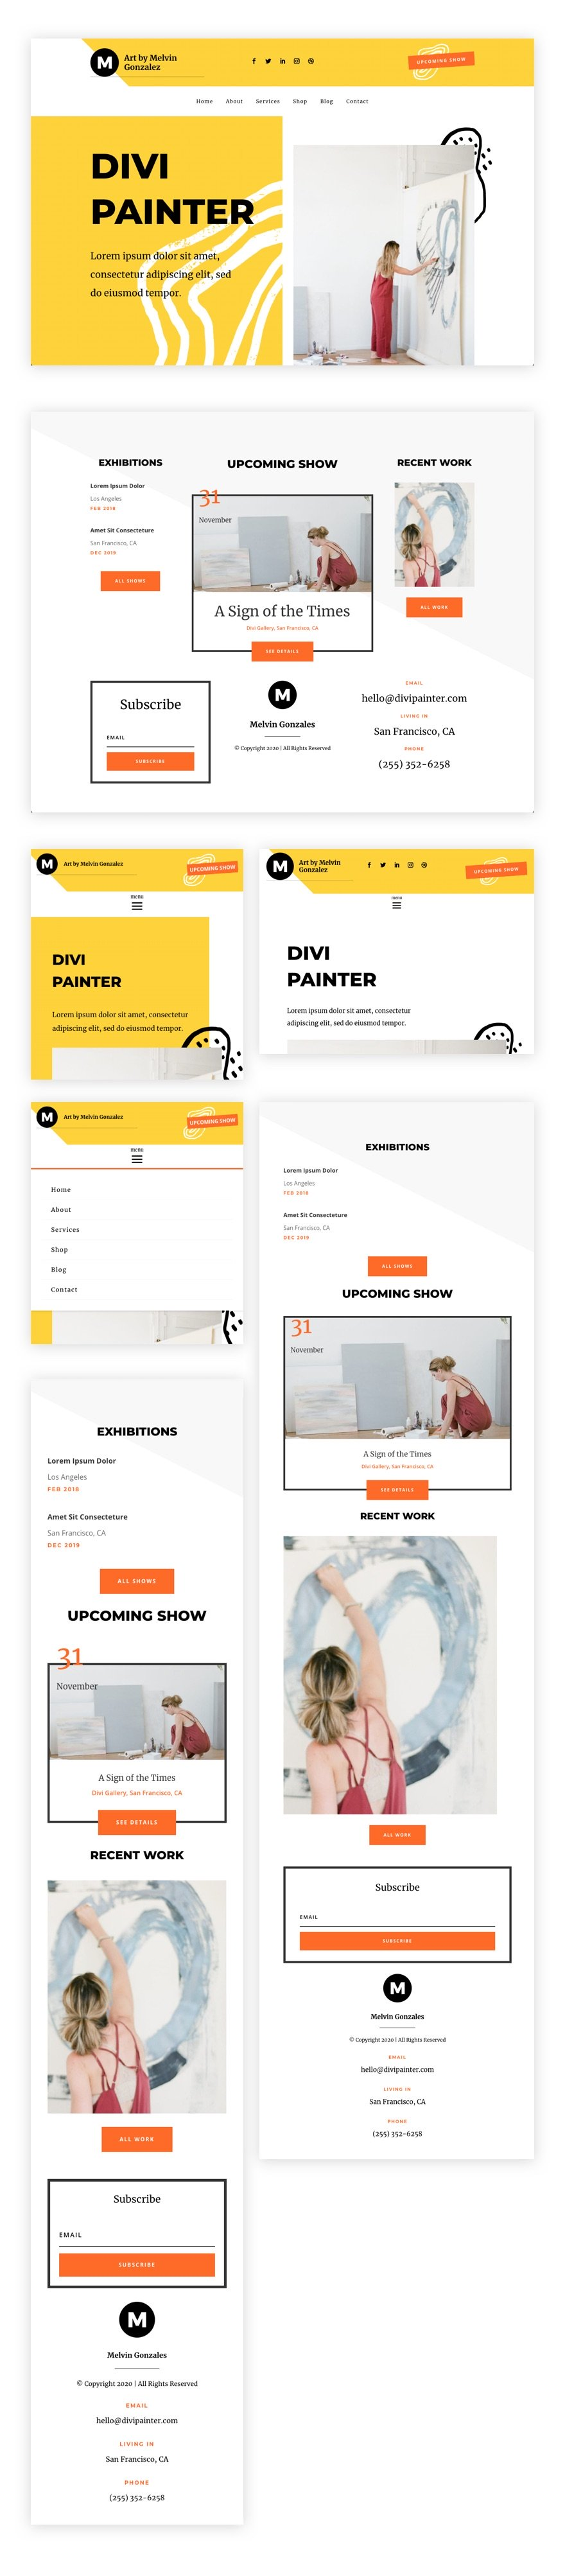 download-a-free-header-and-footer-for-divis-painter-layout-pack Download a FREE Header and Footer for Divi's Painter Layout Pack